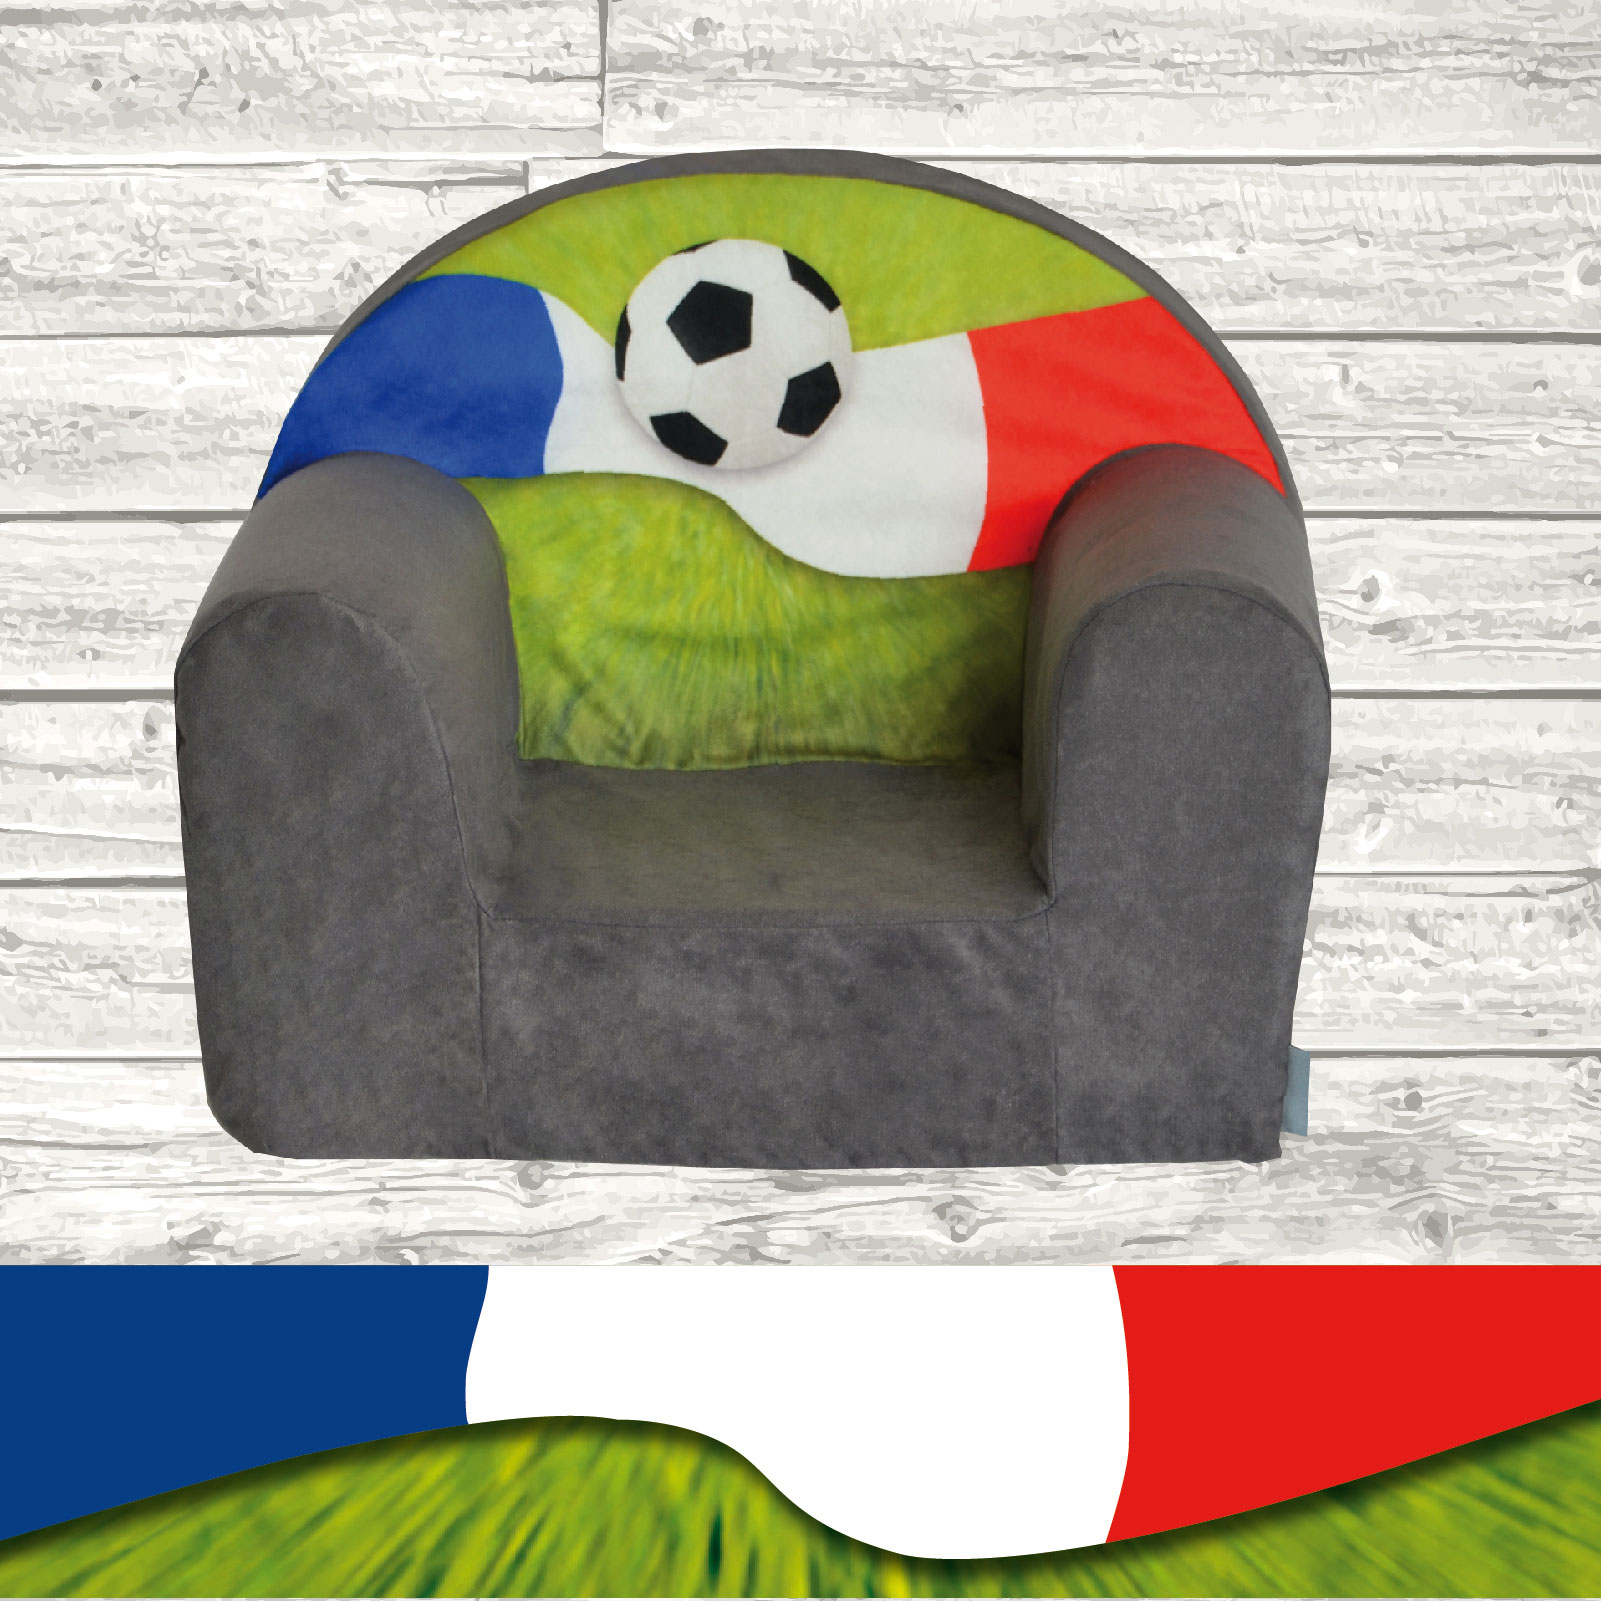 Kindermoebel Sessel Kindersessel Mini Kindercouch Sessel Kindermöbel Sofa